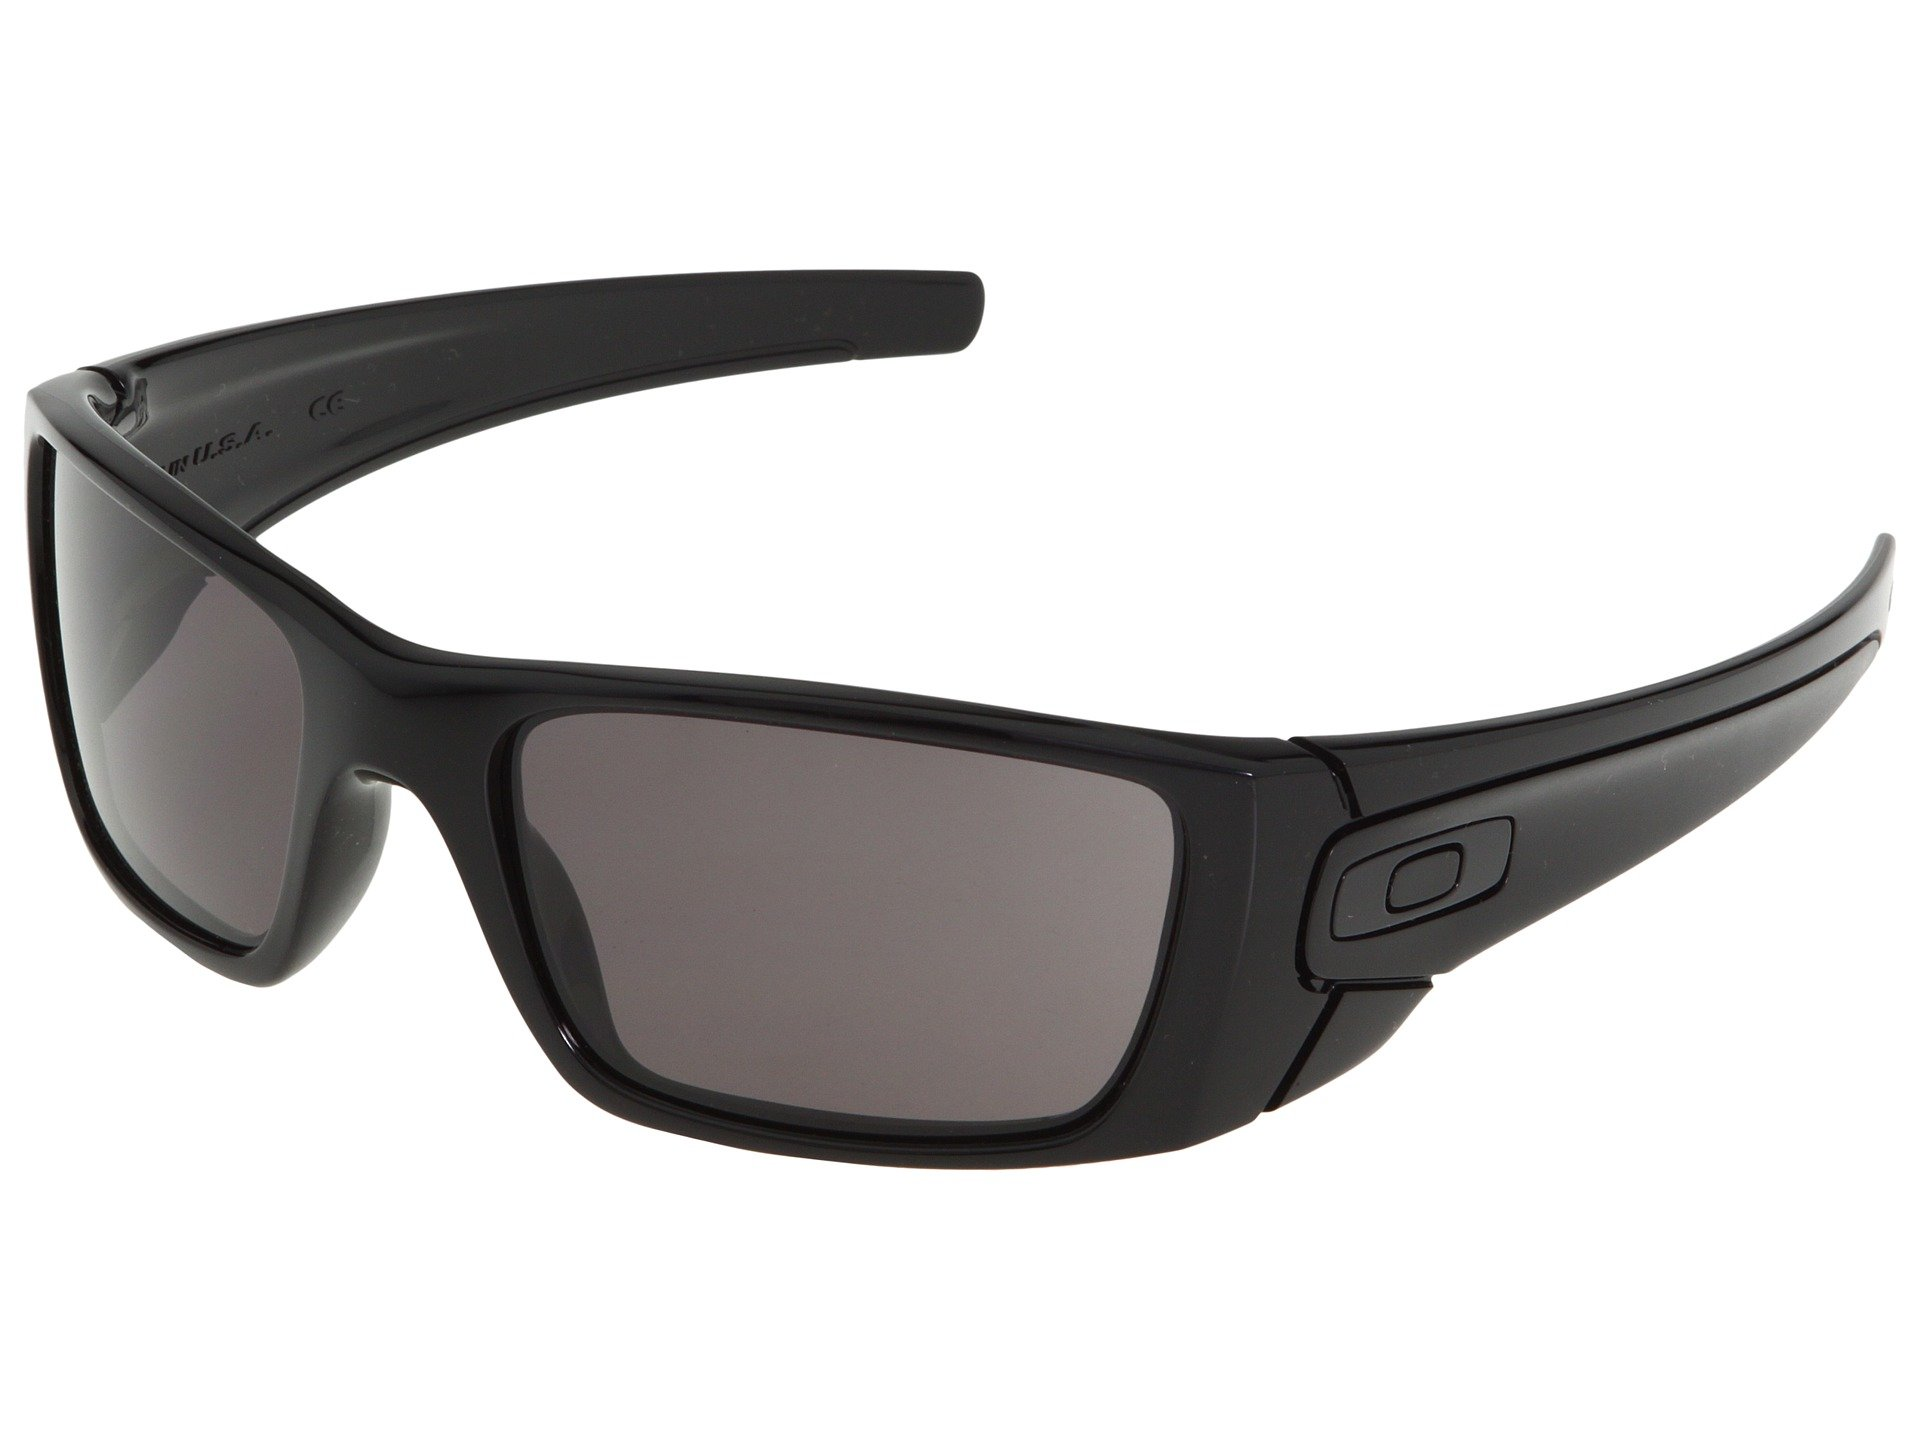 Sunglasses, Flexible Frames | Shipped Free at Zappos